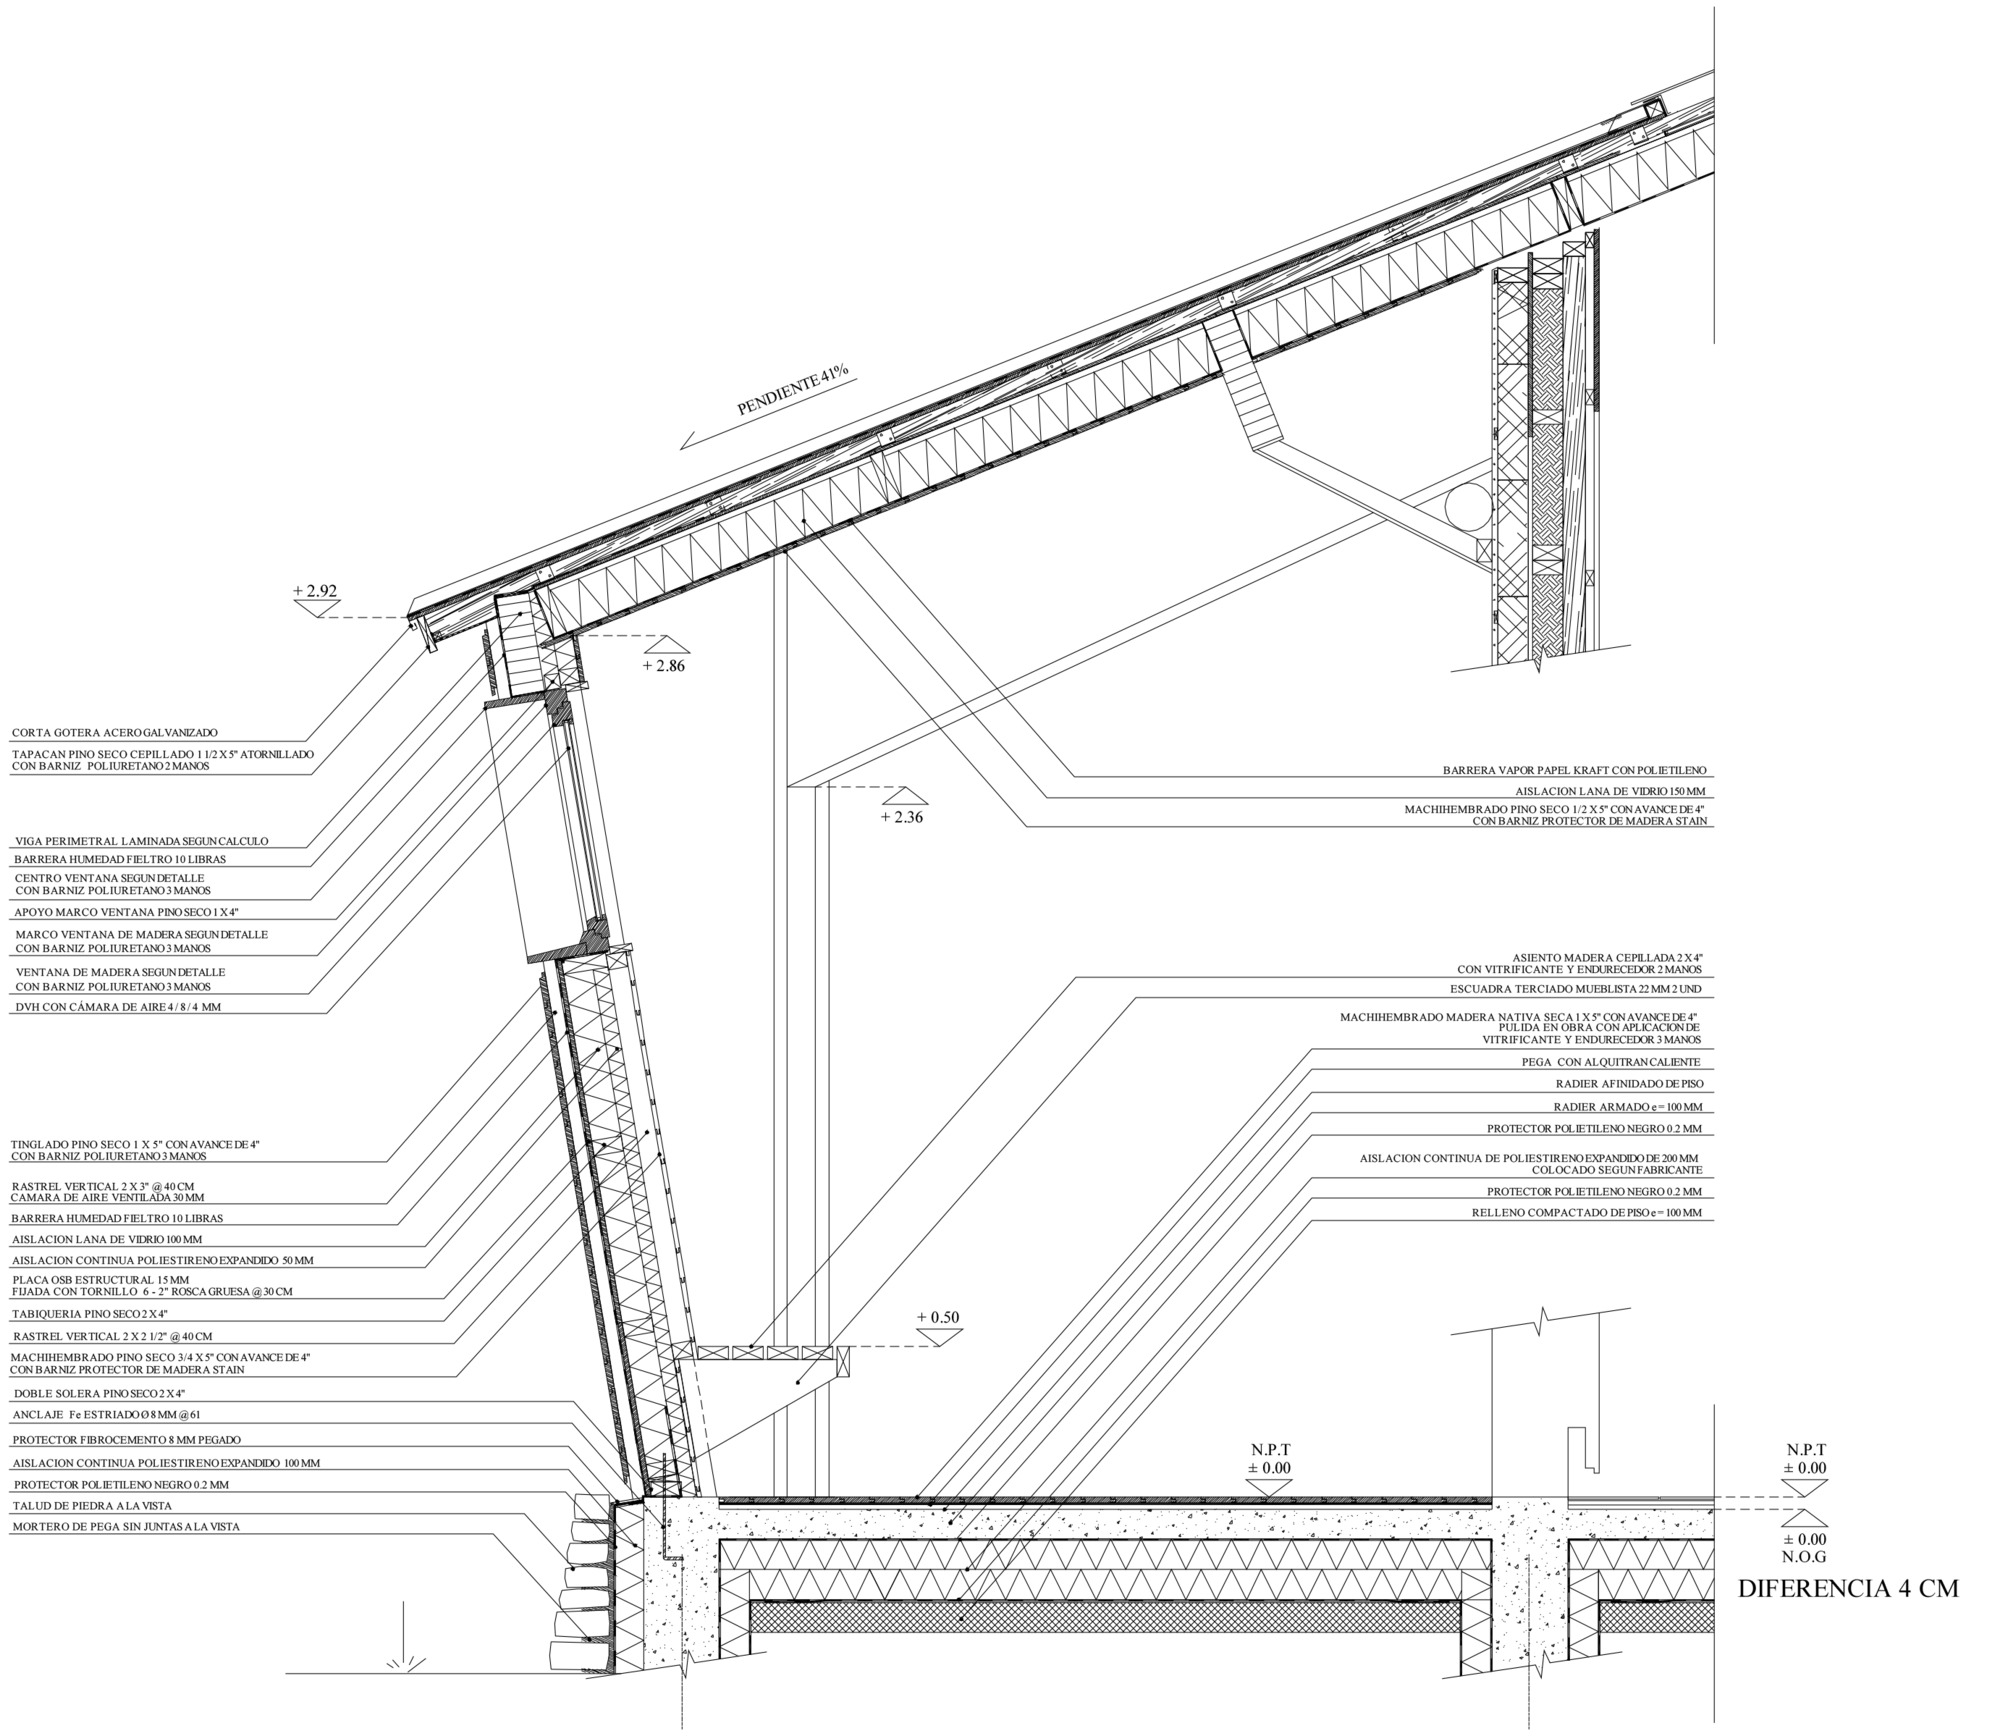 Gallery of 30 plans sections and details for sustainable - Como hacer una solera de hormigon ...